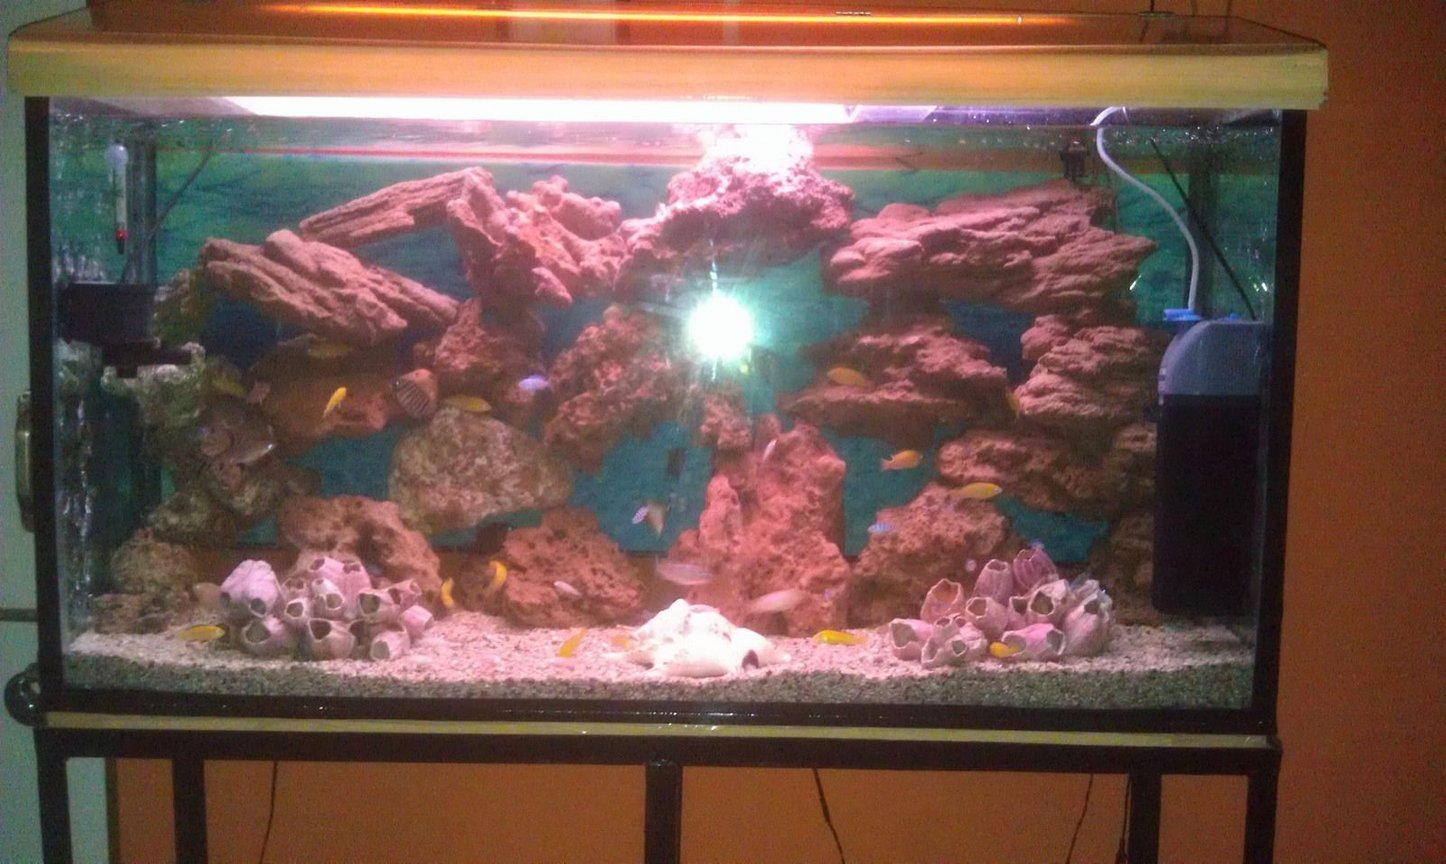 75 gallons freshwater fish tank (mostly fish and non-living decorations) - Chichlid Community tank